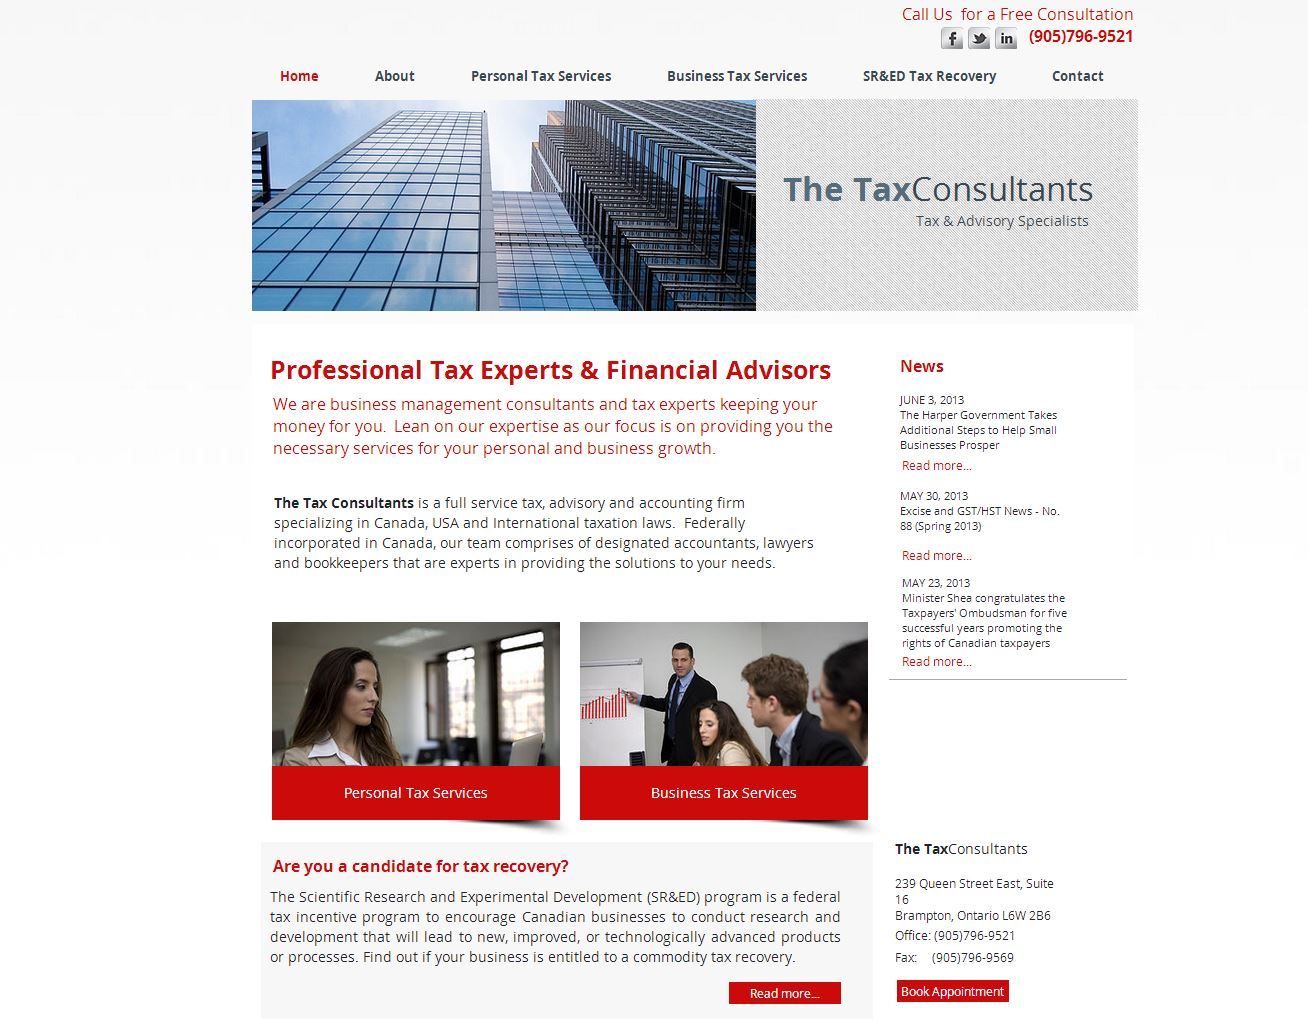 The Tax Consultants